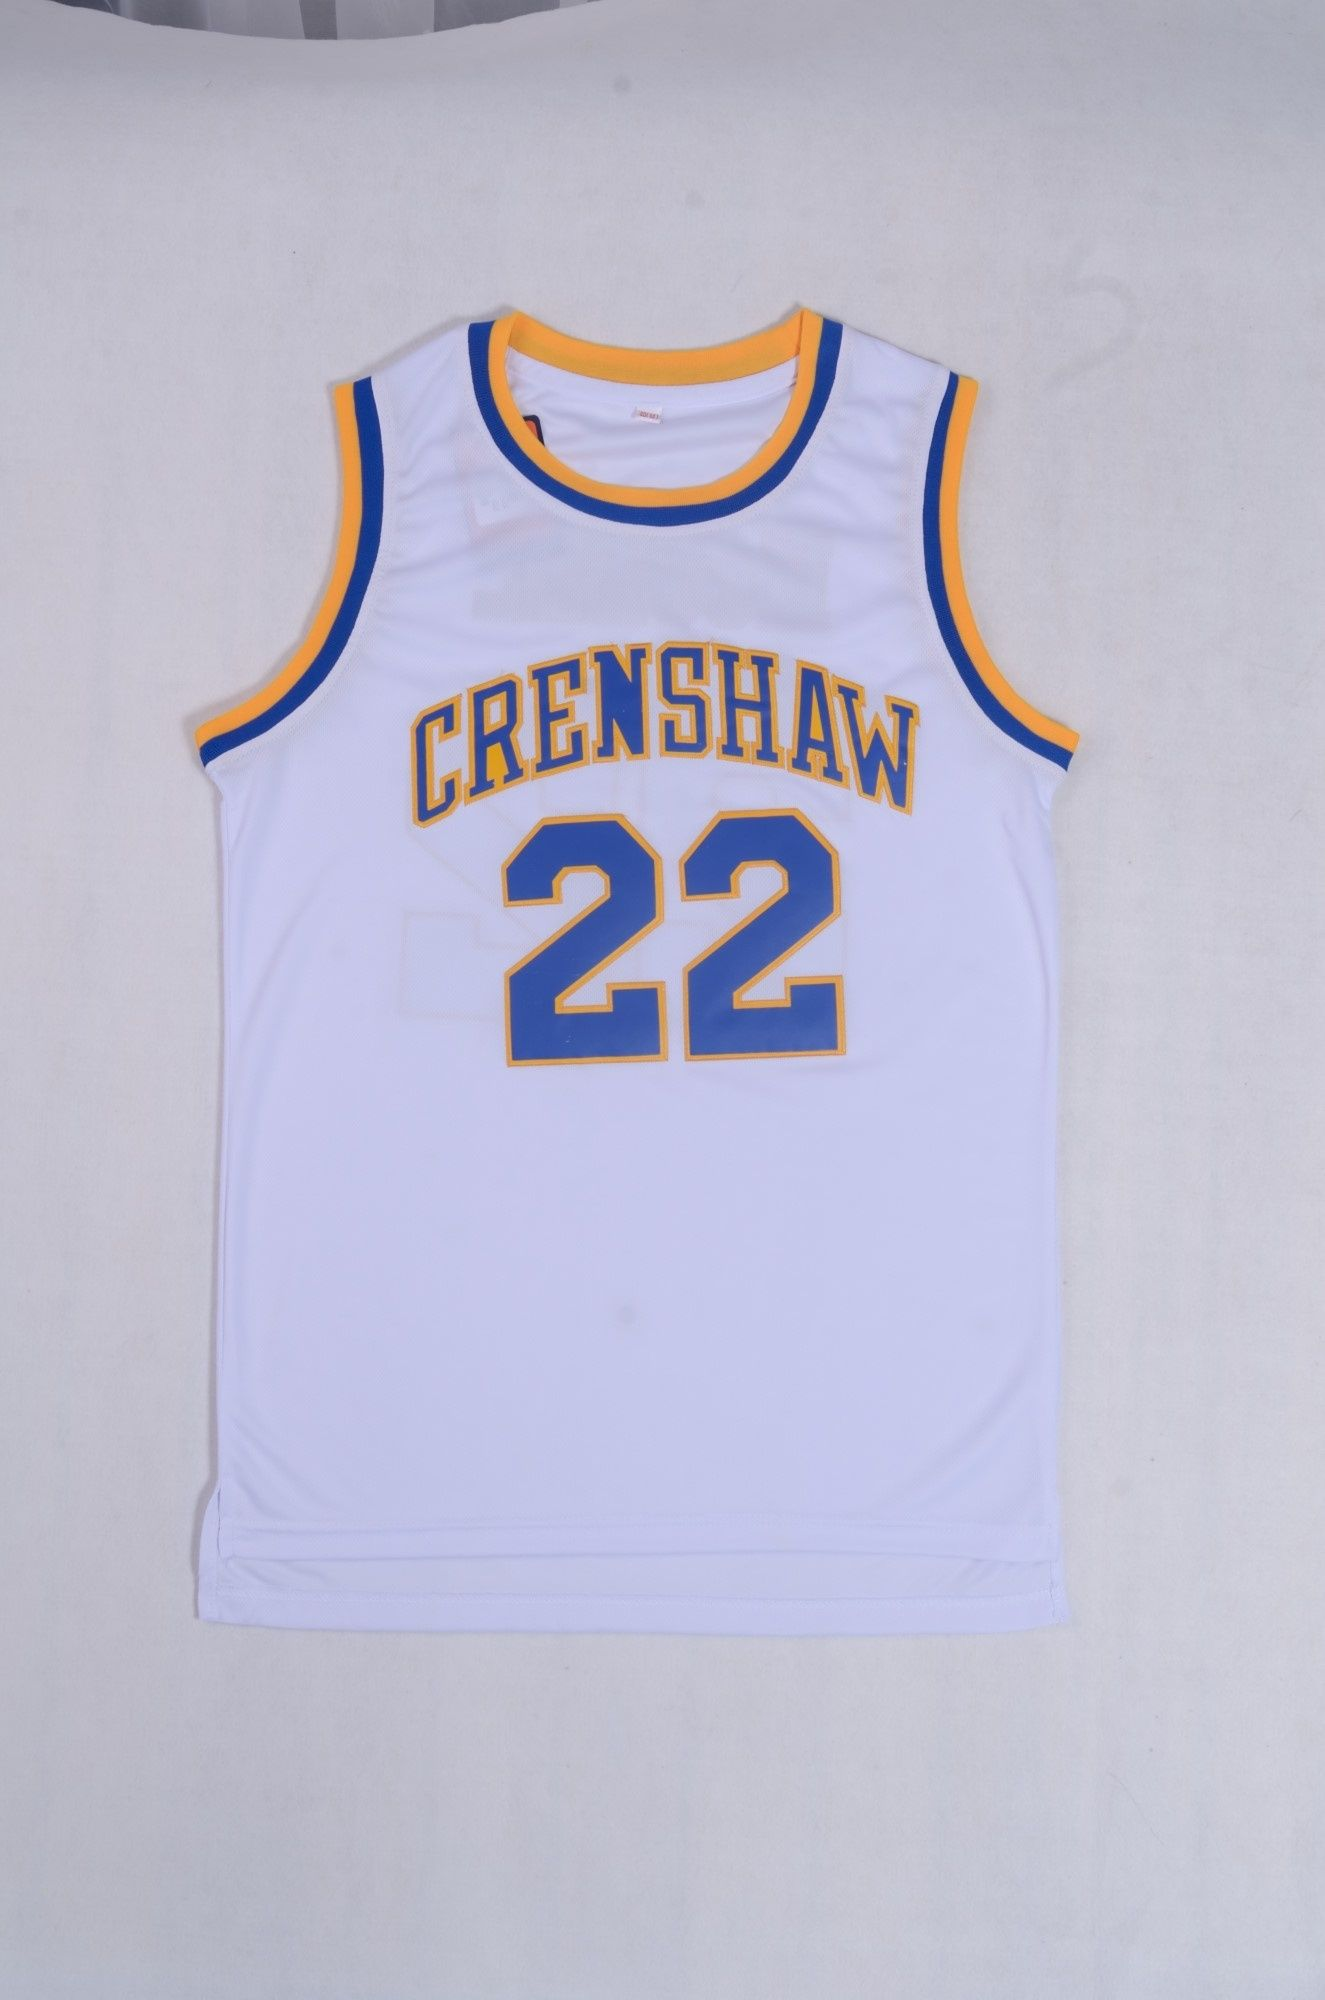 CRENSHAW Wright Basketball Jersey Number 32 Color White Basketball Jersey 2db7888748